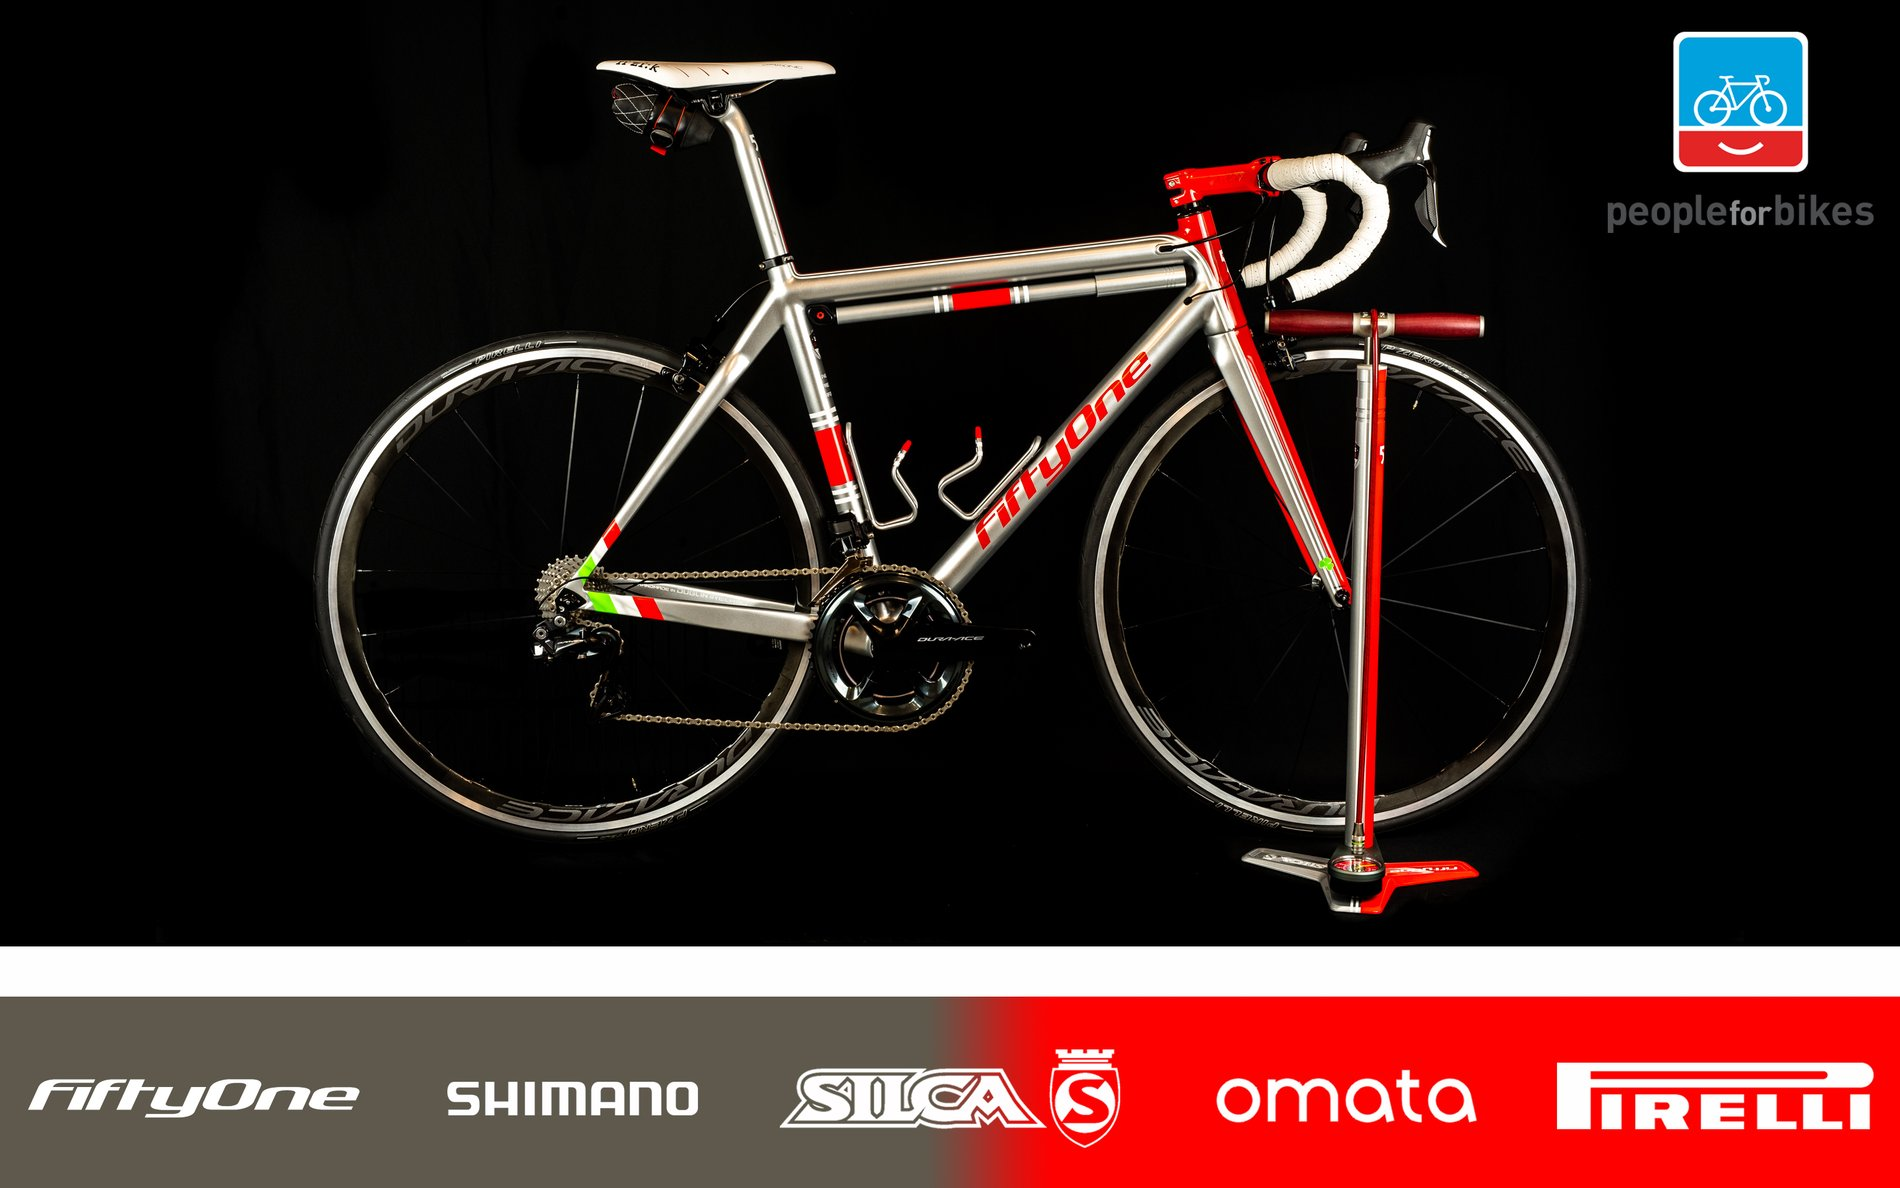 FiftyOne, Silca, Shimano, Omata and Pirelli: A Special Felice Sacchi Homage People for Bikes Raffle